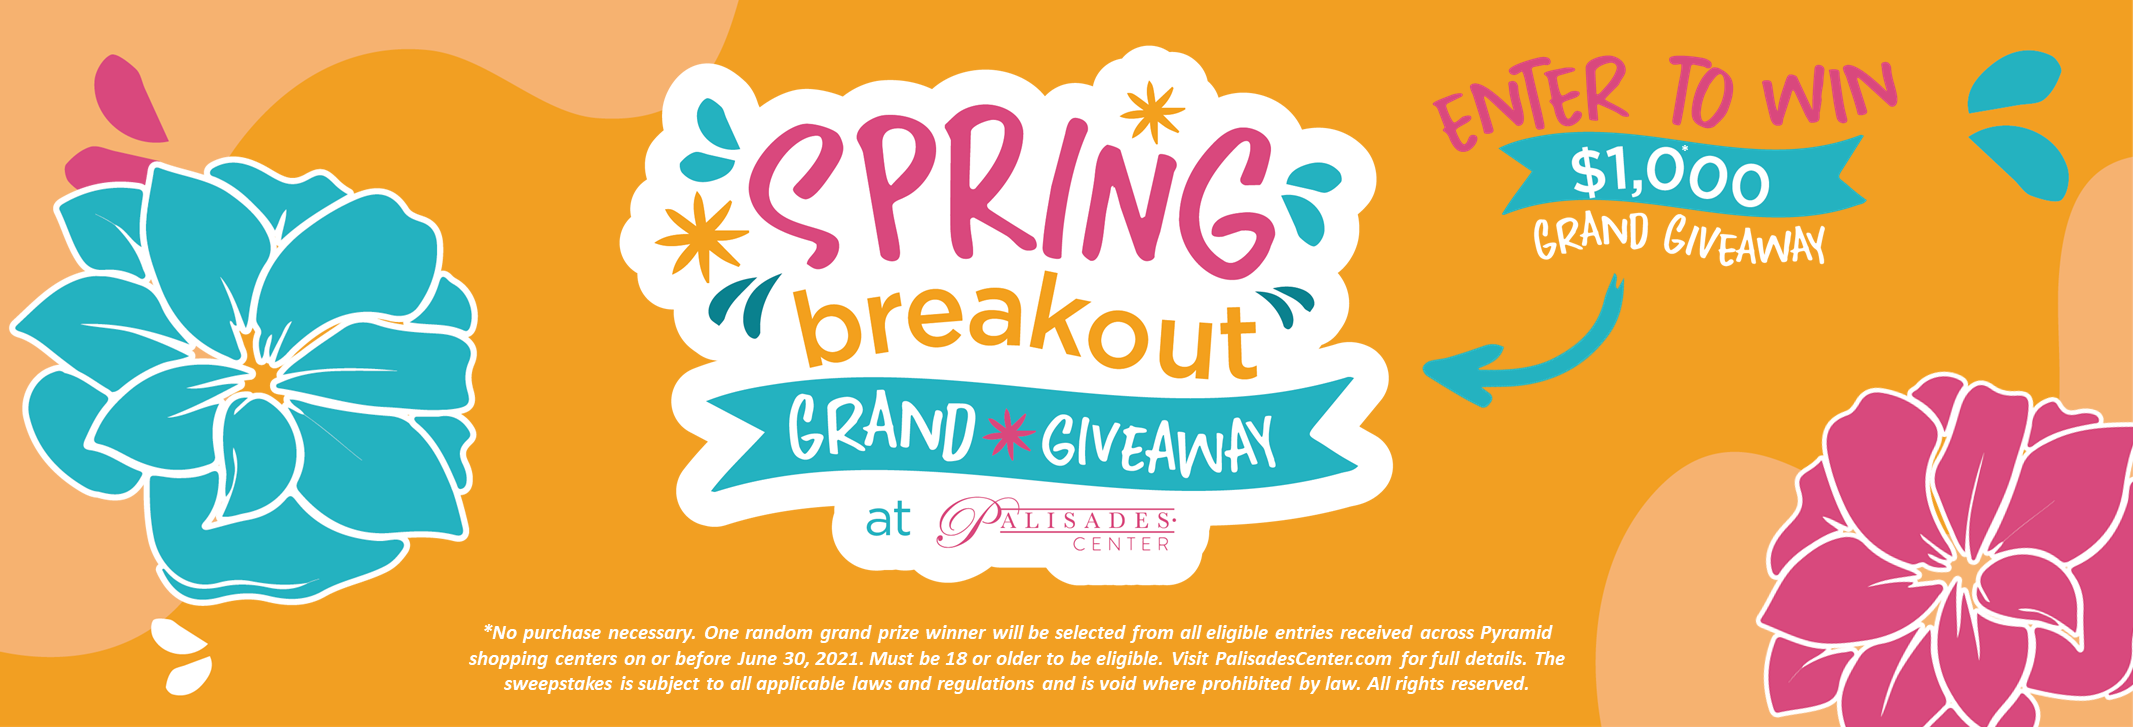 2021 03 25 Springbreakout Giveaway Page 1